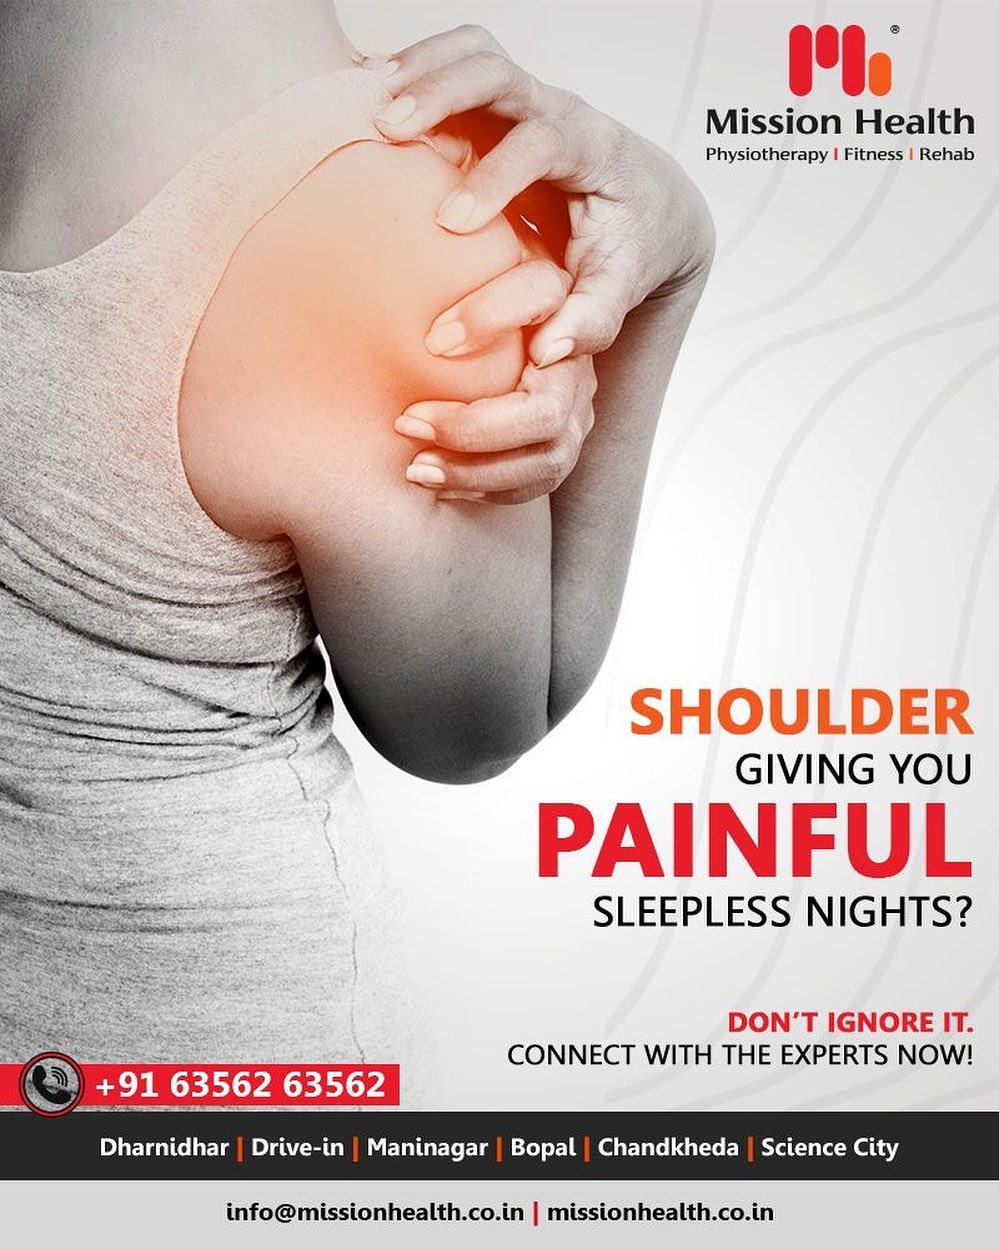 At Mission Health Shoulder Clinic, we offer Comprehensive Physiotherapy and Rehabilitation services to patients, for a host of shoulder concerns. We pride ourselves on our highly focused expert one-on-one treatment and care meant for all types of shoulder conditions and treatments tailor-made to patients' needs.  Call +916356263562 www.missionhealth.co.in  #shouldertreatment #shoulderpain  #shoulderinjury #shoulderrehab #shouldermobilization #frozenshoulder #shouldersurgery #shoulderpainrelief #heathyliving #healthylifestyle #MissionHealth #MissionHealthIndia #MovementIsLife